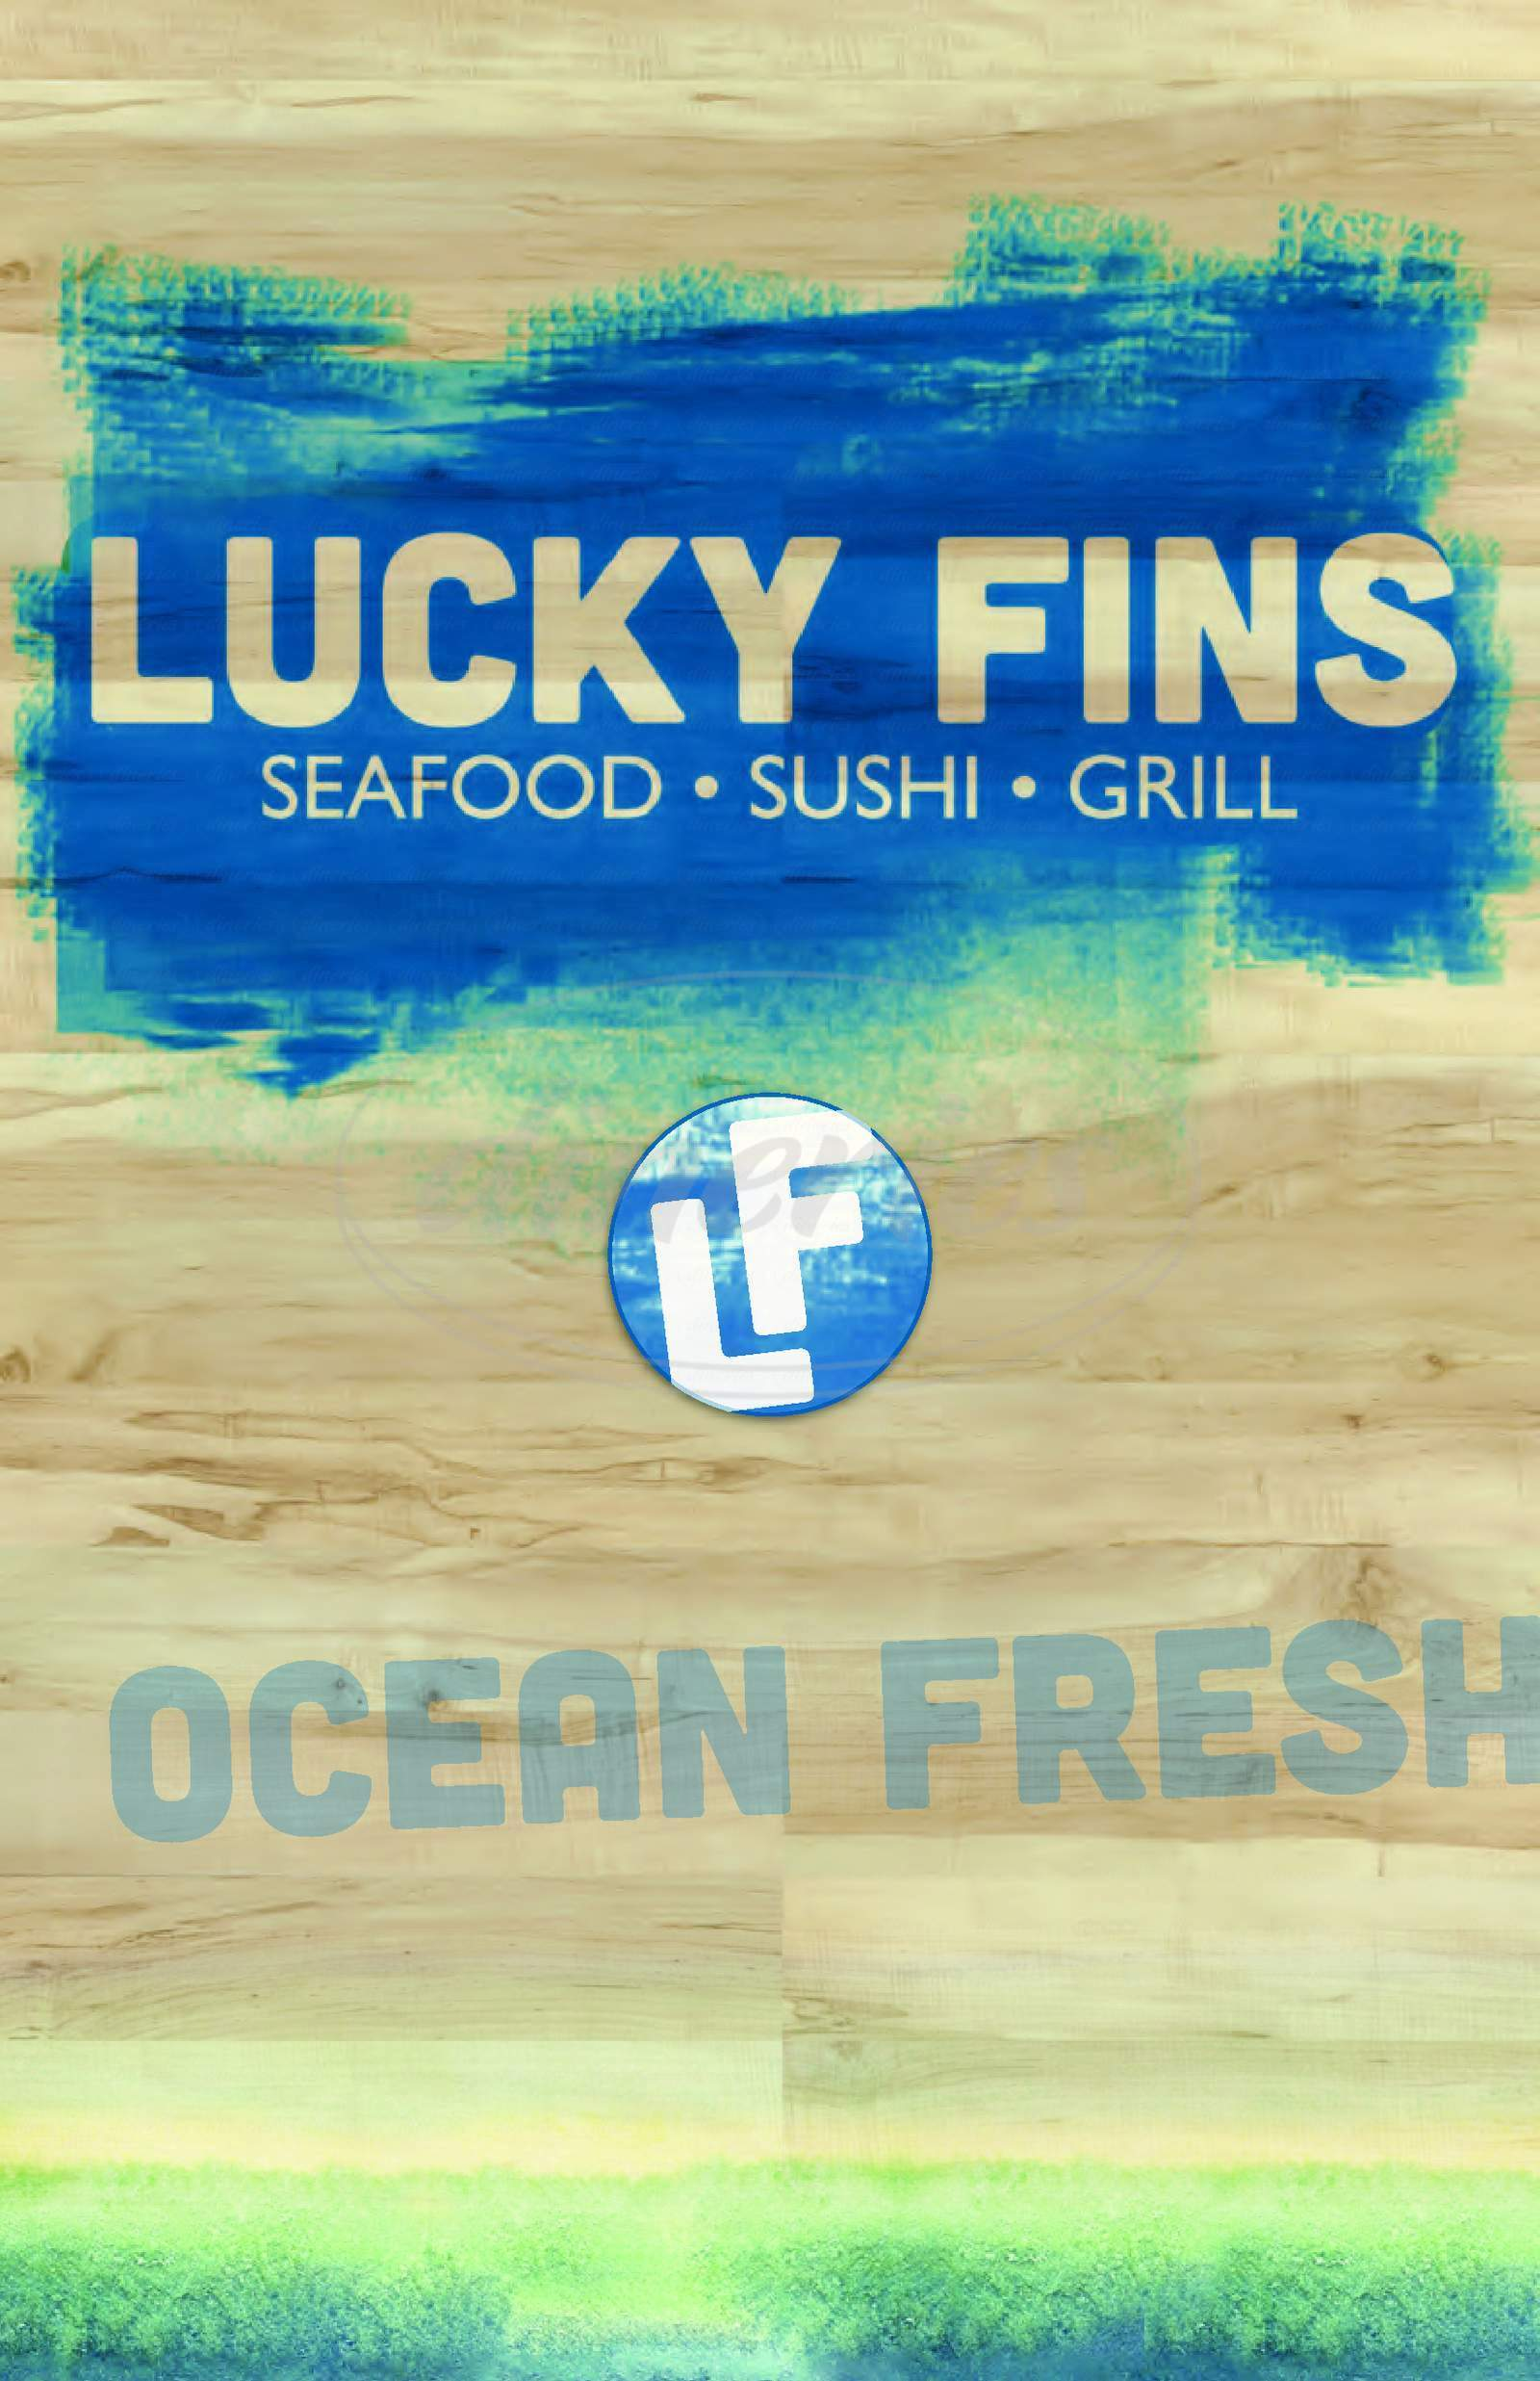 menu for Lucky Fins